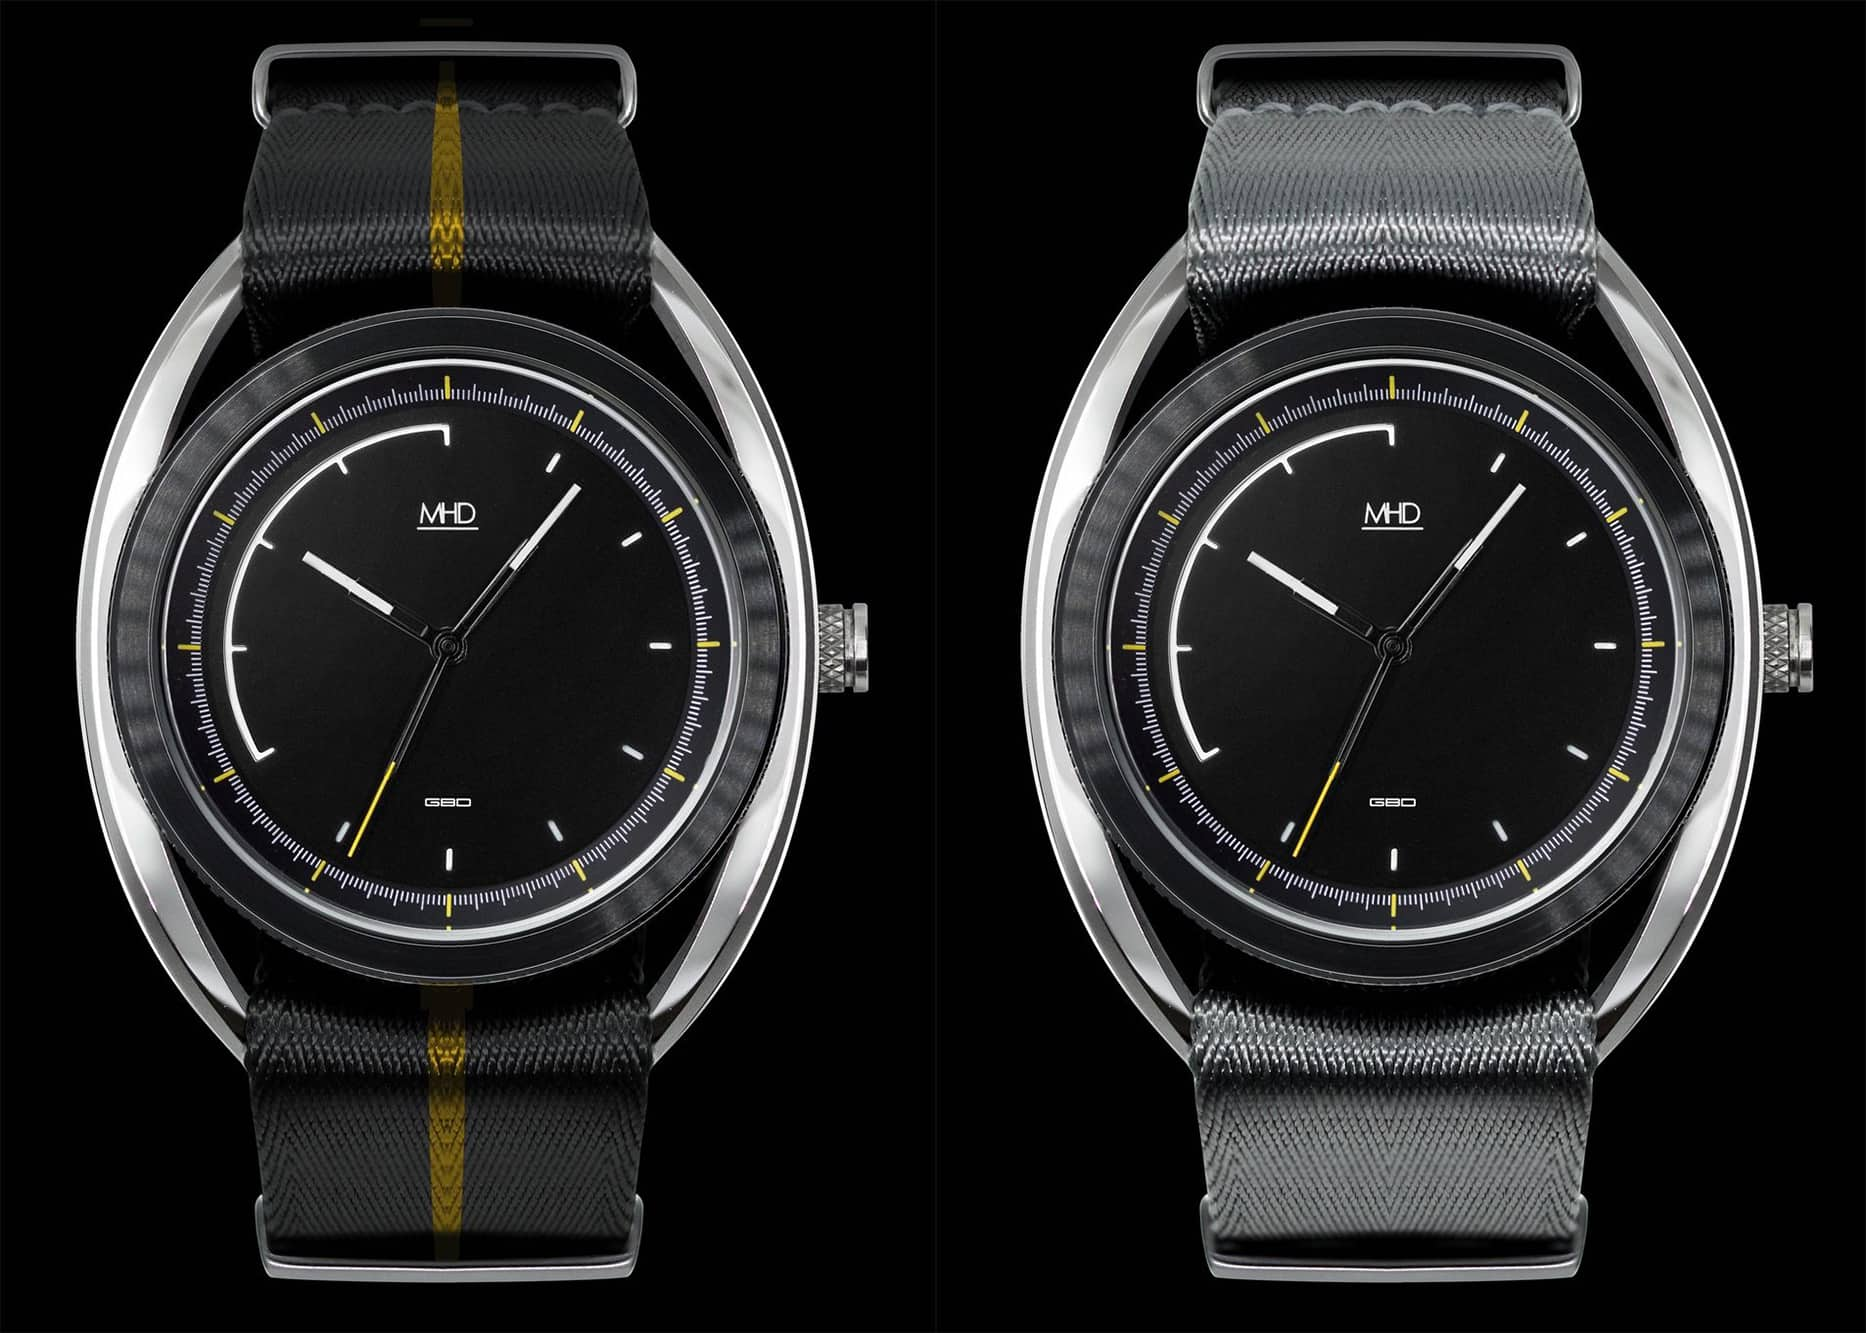 Introducing the MHD SA2, the Latest Automotive-Inspired Watch from Matthew Humphries